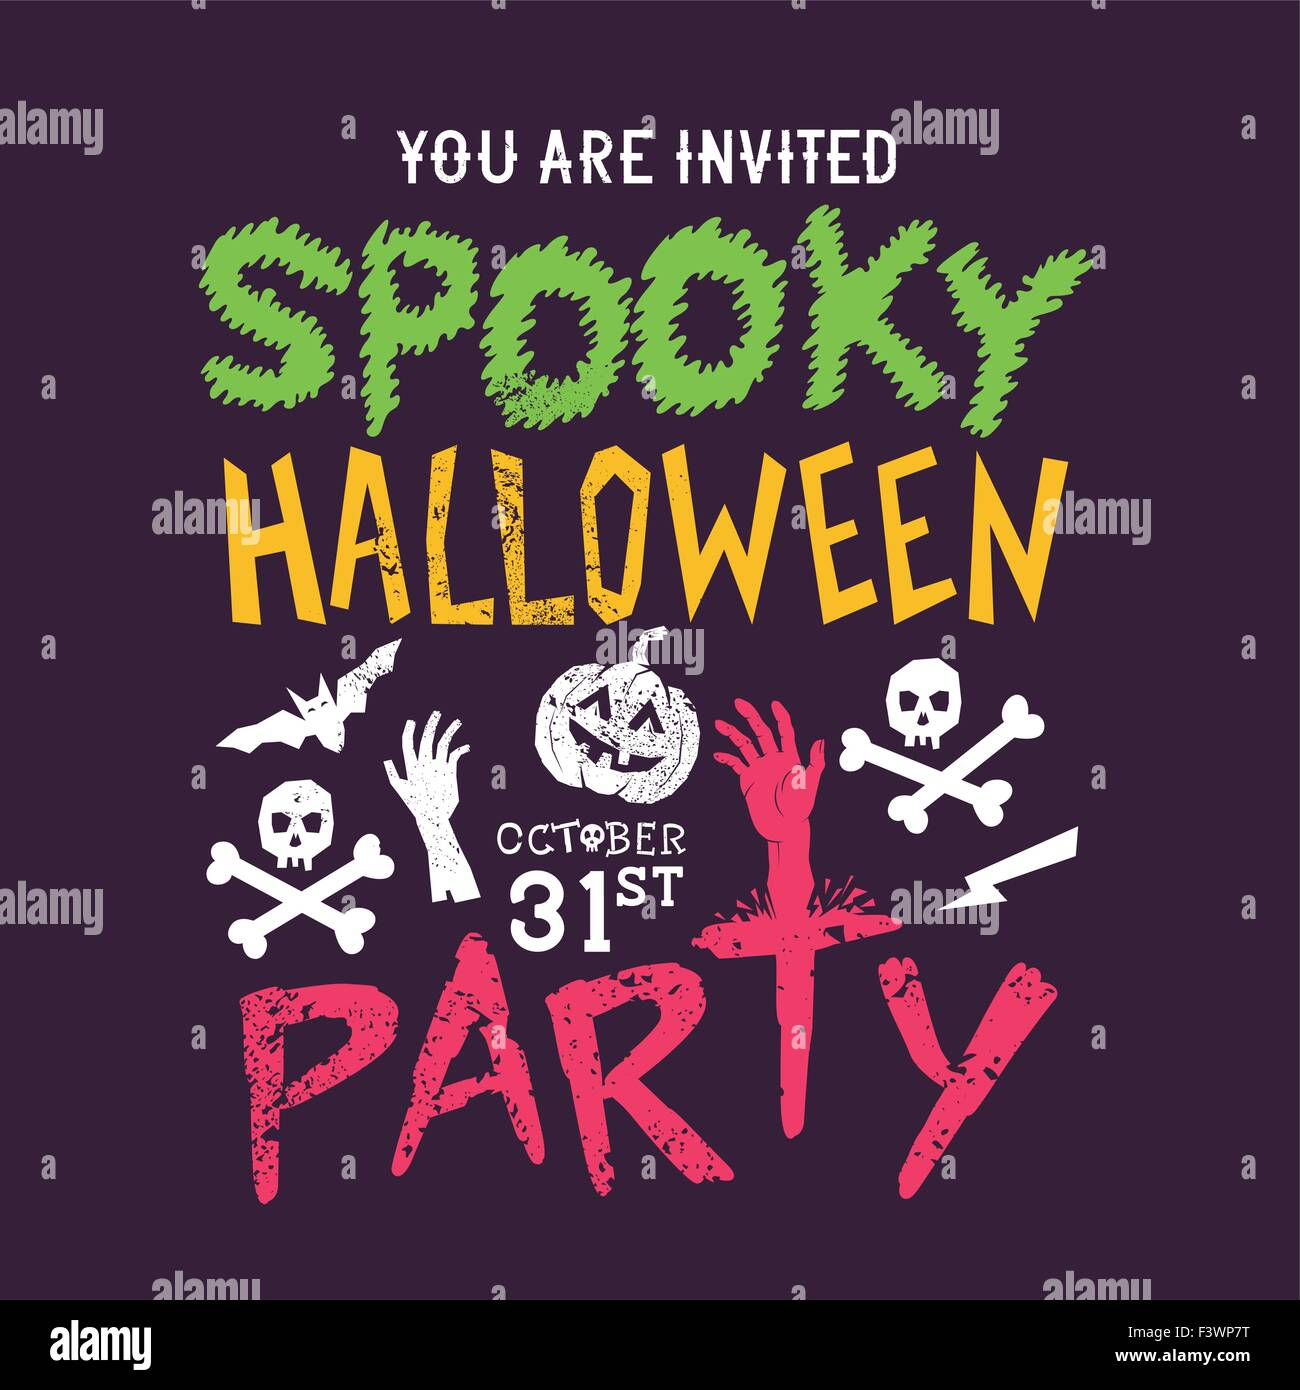 Spooky Halloween party poster design. Joyeux Halloween ! Vector illustration Photo Stock